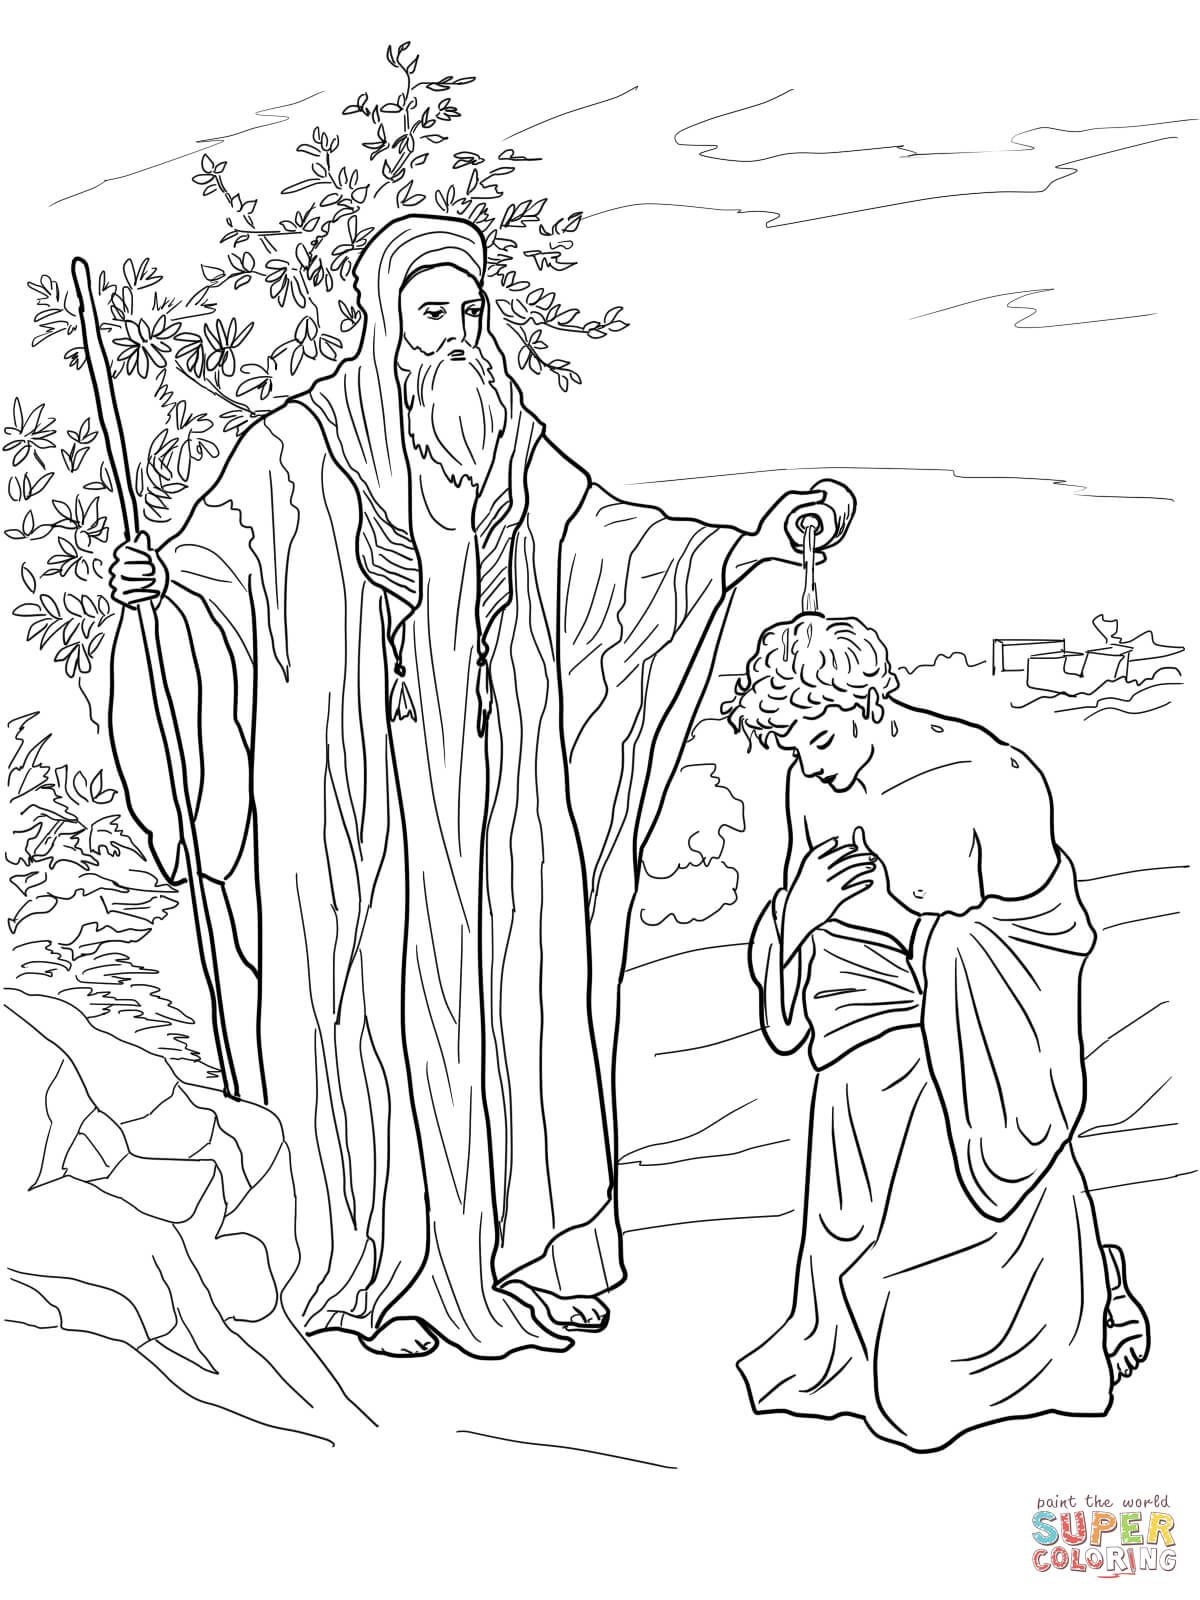 Samuel Anoints Saul As King Coloring Page From Category Select 27278 Printable Crafts Of Cartoons Nature Animals Bible And Many More